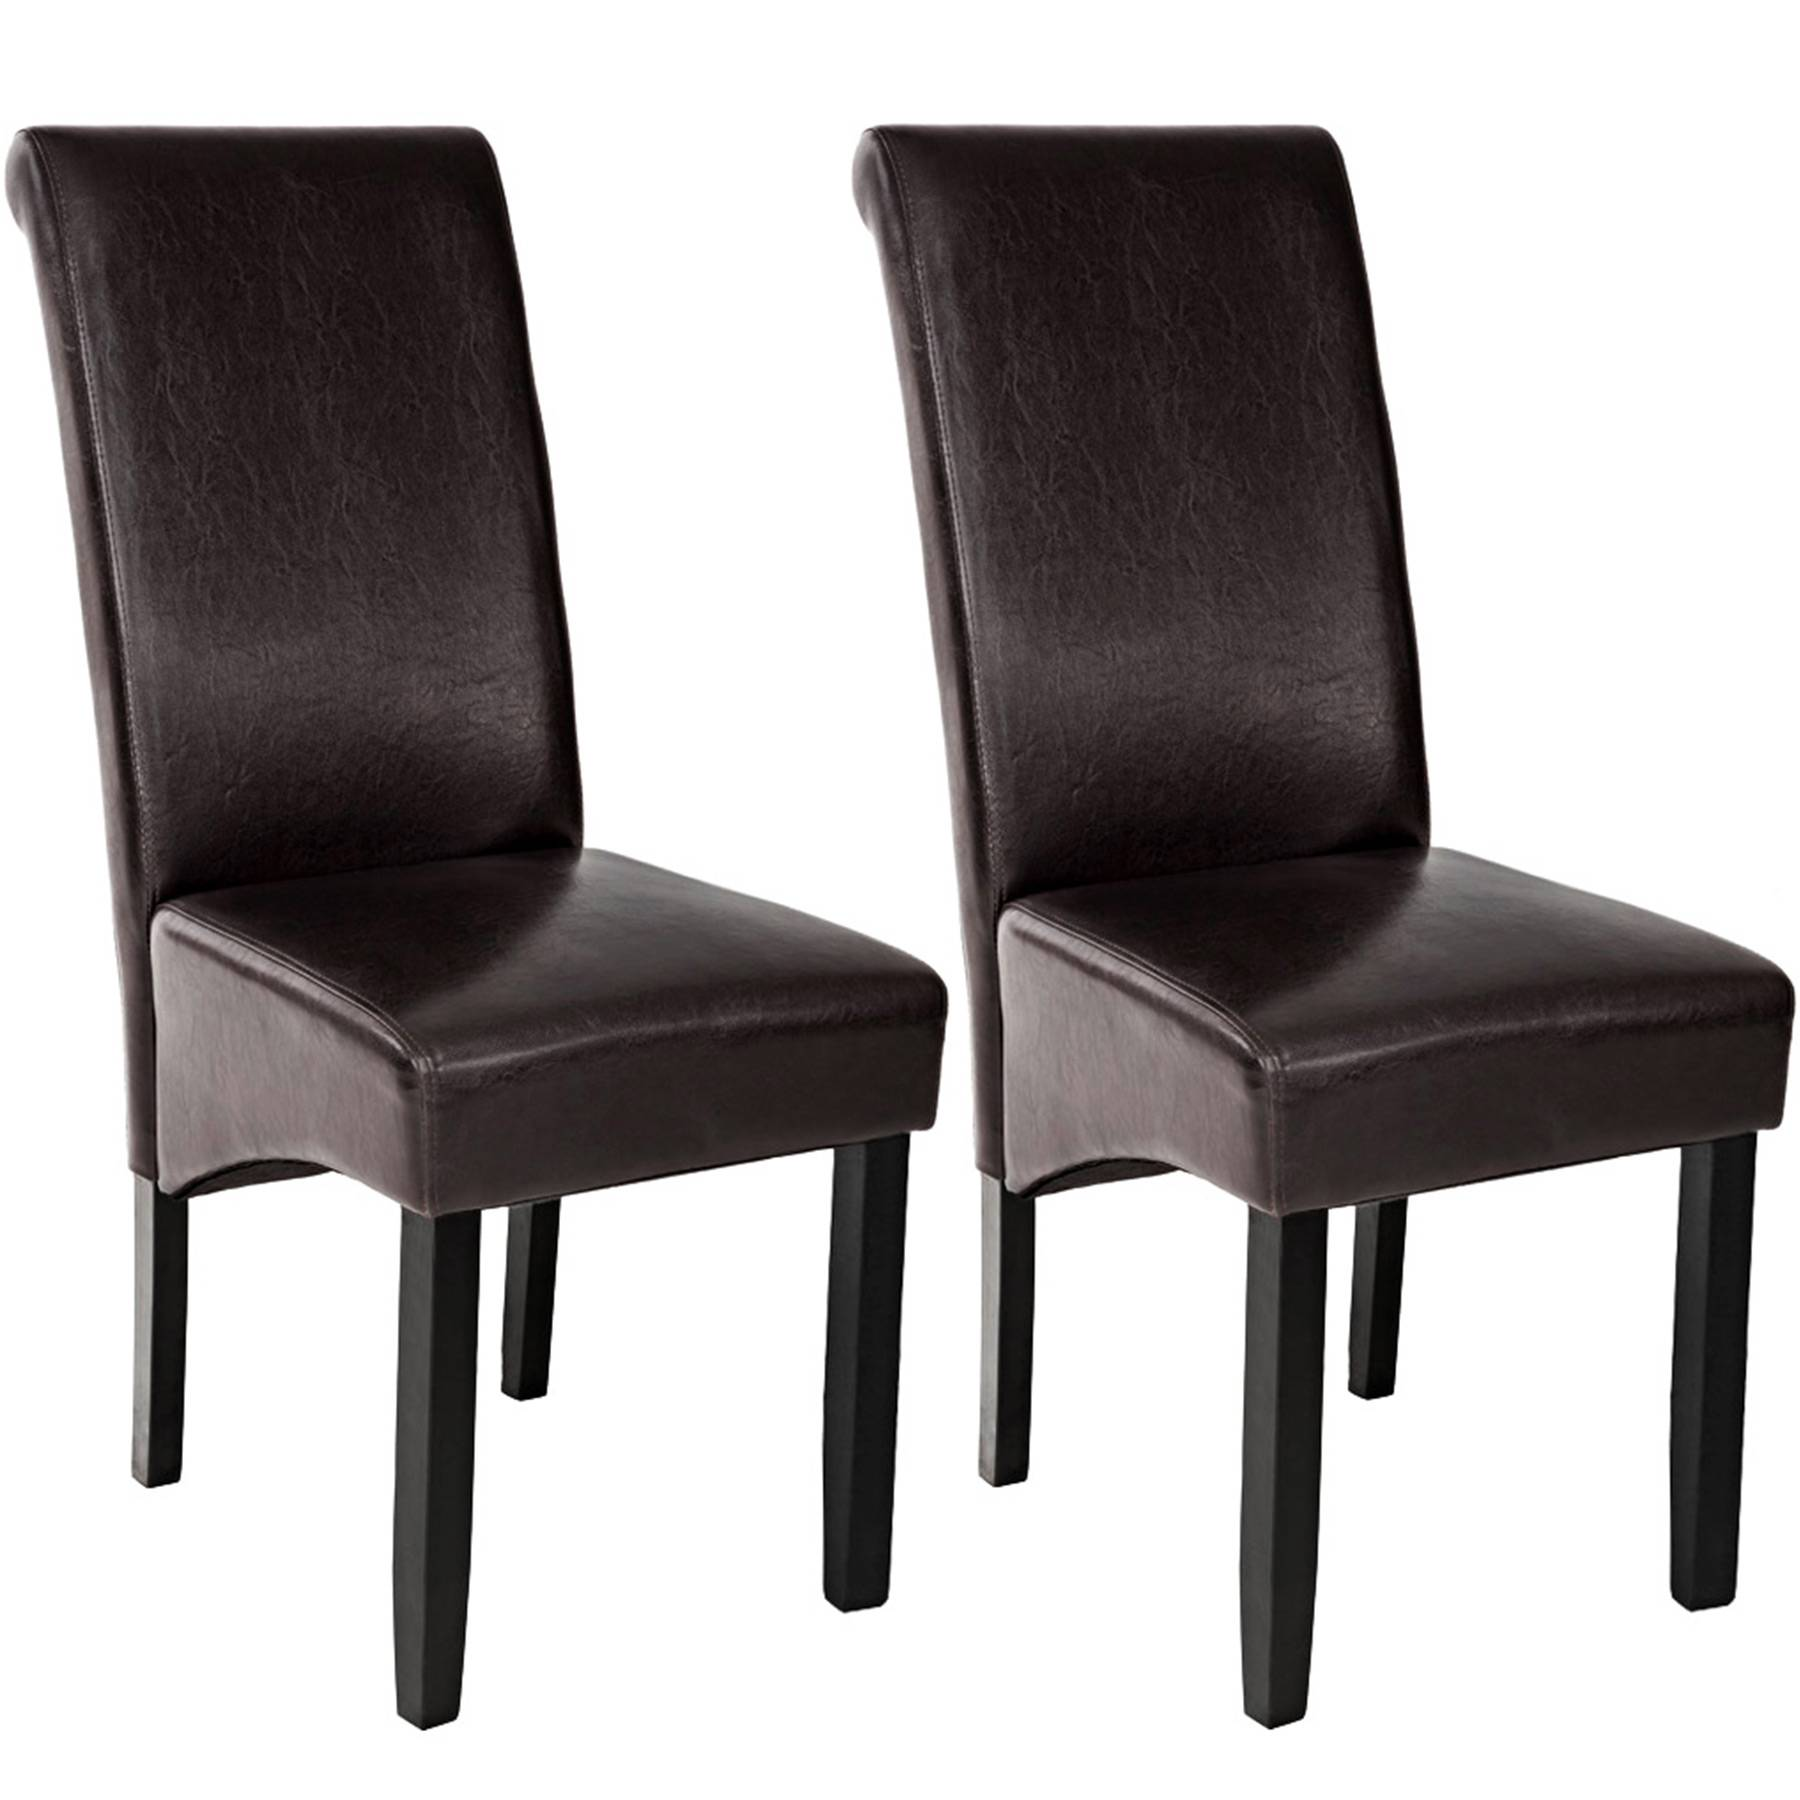 tectake Dining chairs with ergonomic seat shape - brown